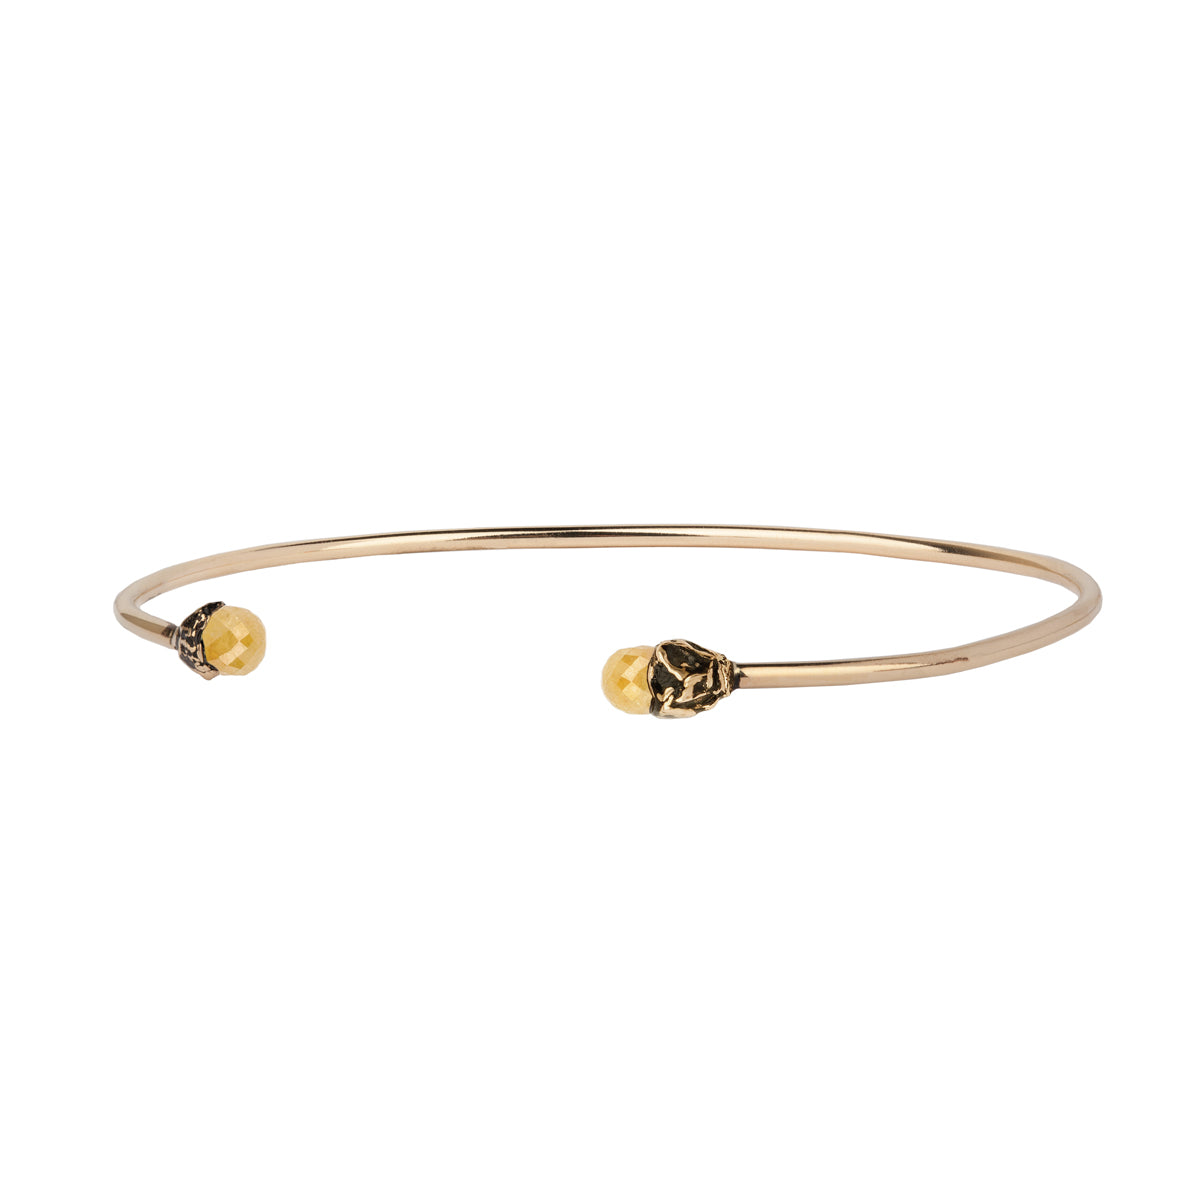 Golden Rustic Diamond 14K Gold Capped Open Bangle